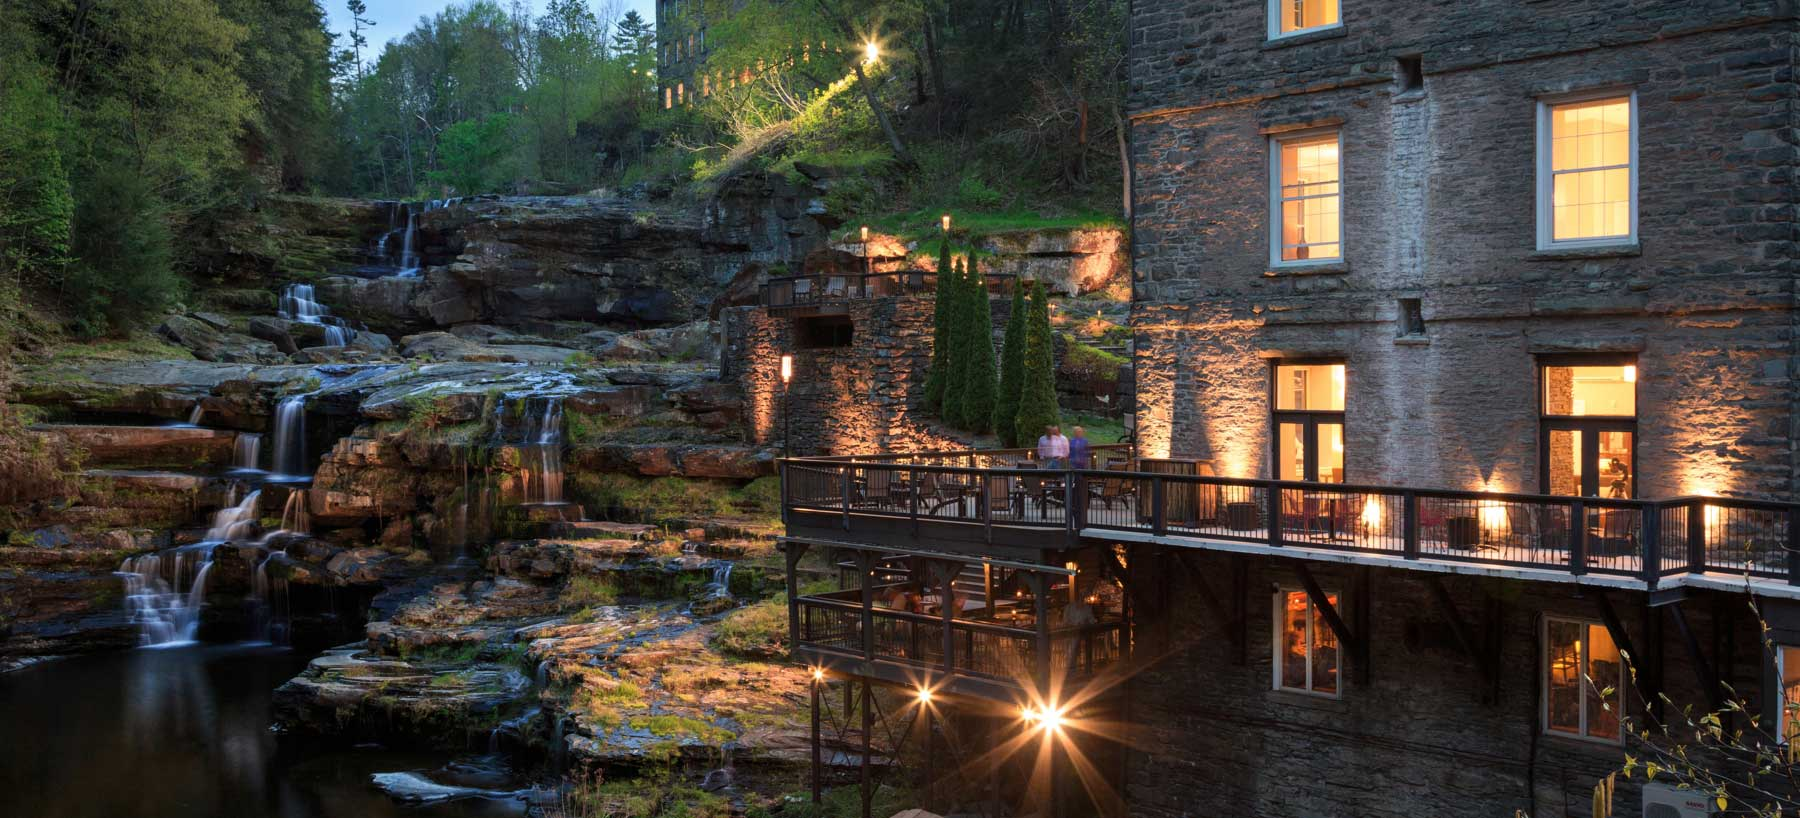 Contemporary Hotel in Pocono Mountains | Hotel in Hawley PA